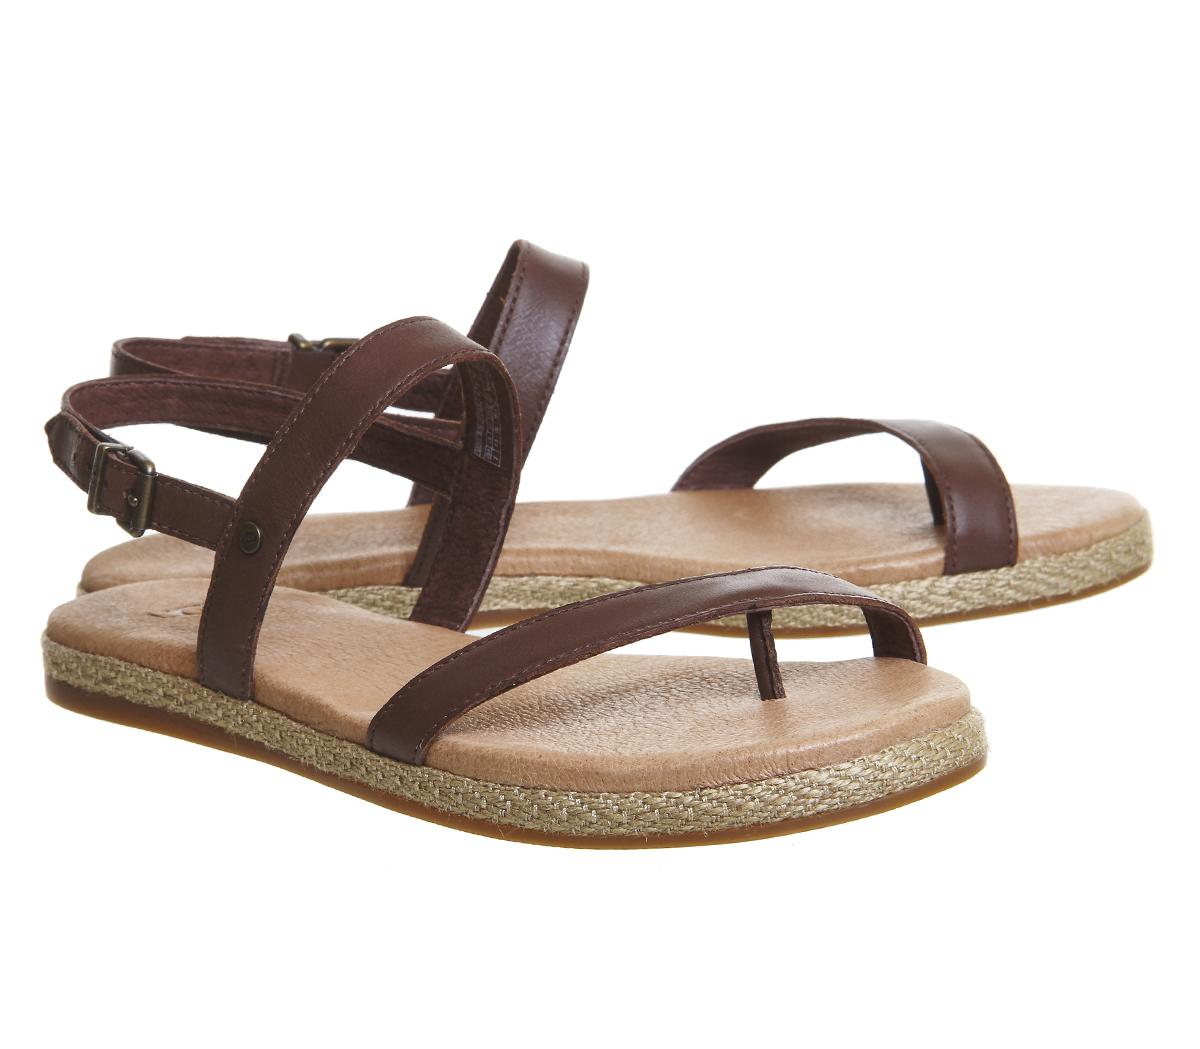 Ugg Leather Brylee Sandals In Chocolate Brown Lyst